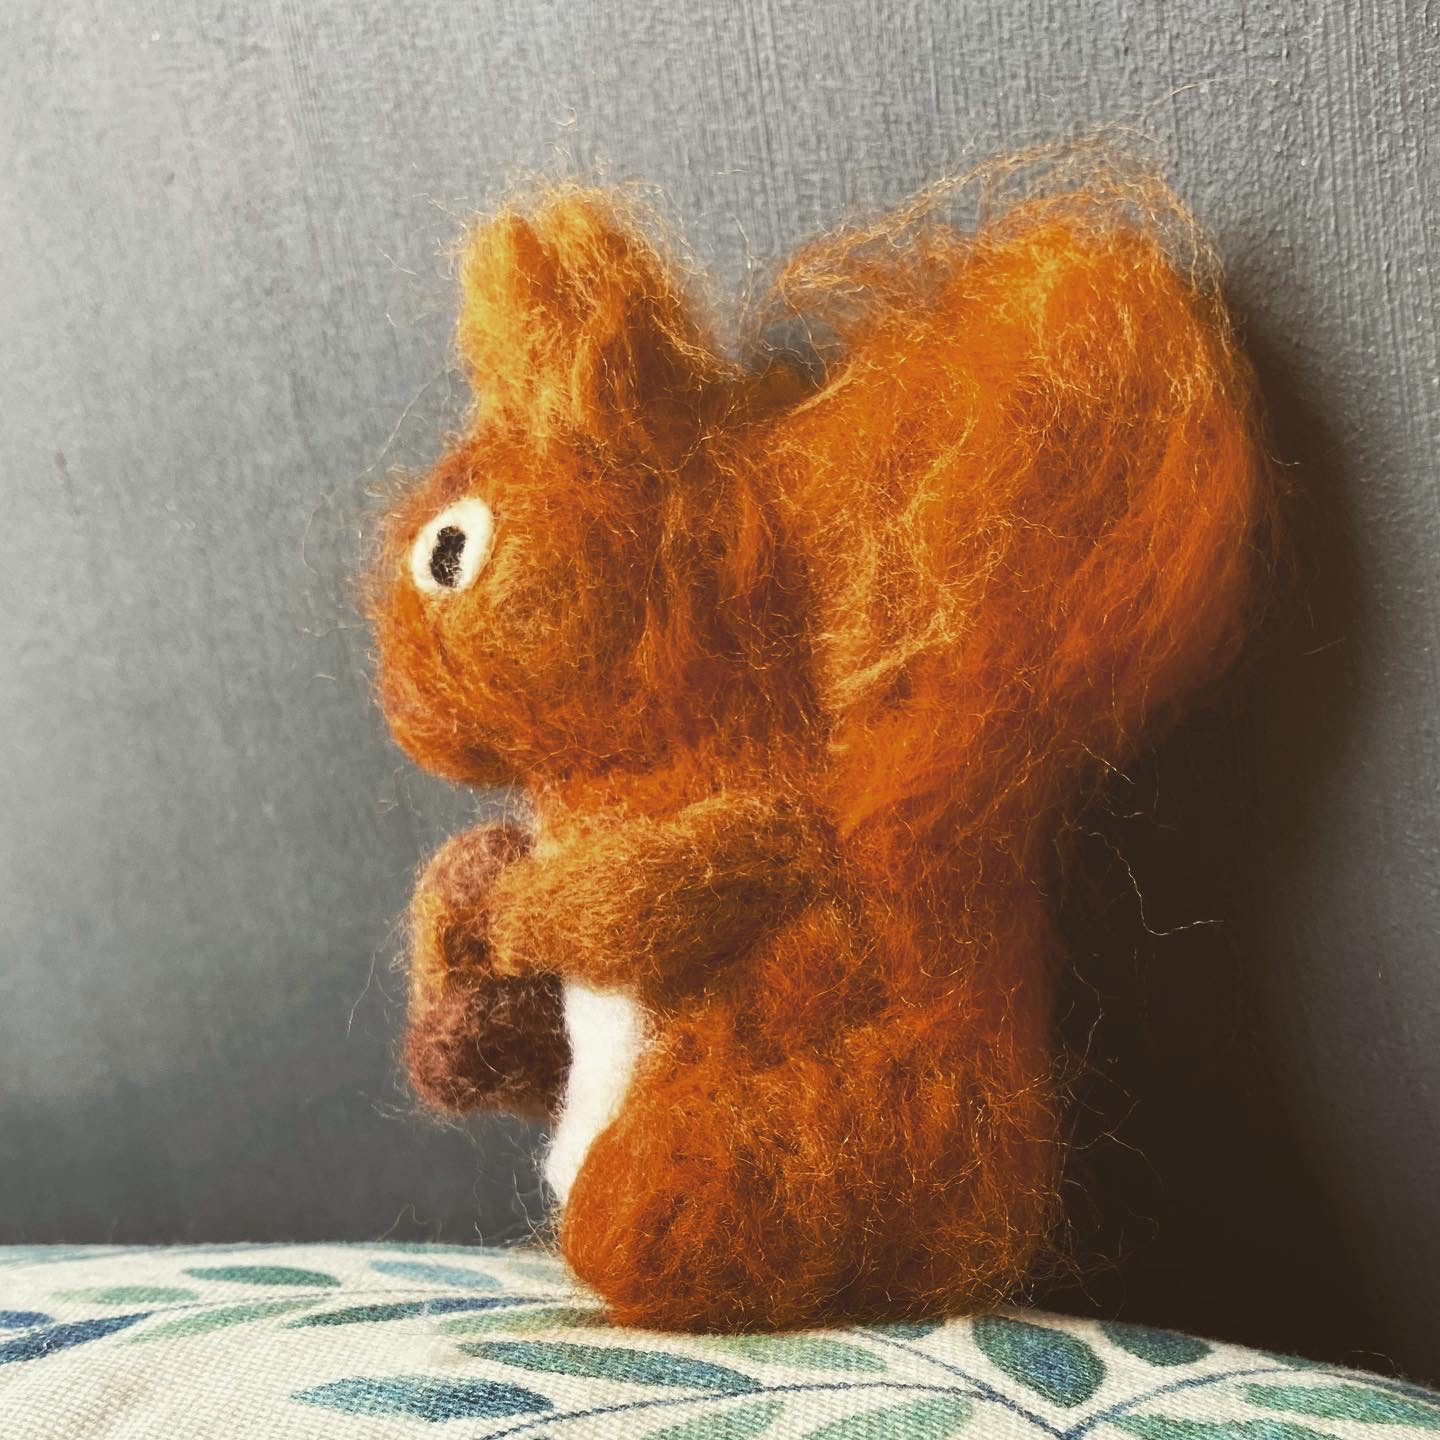 This sneaky squirrel, created using the dry felting technique, was caught dashing about the house with his acorn! English wildlife can sometimes turn up where you least want it!